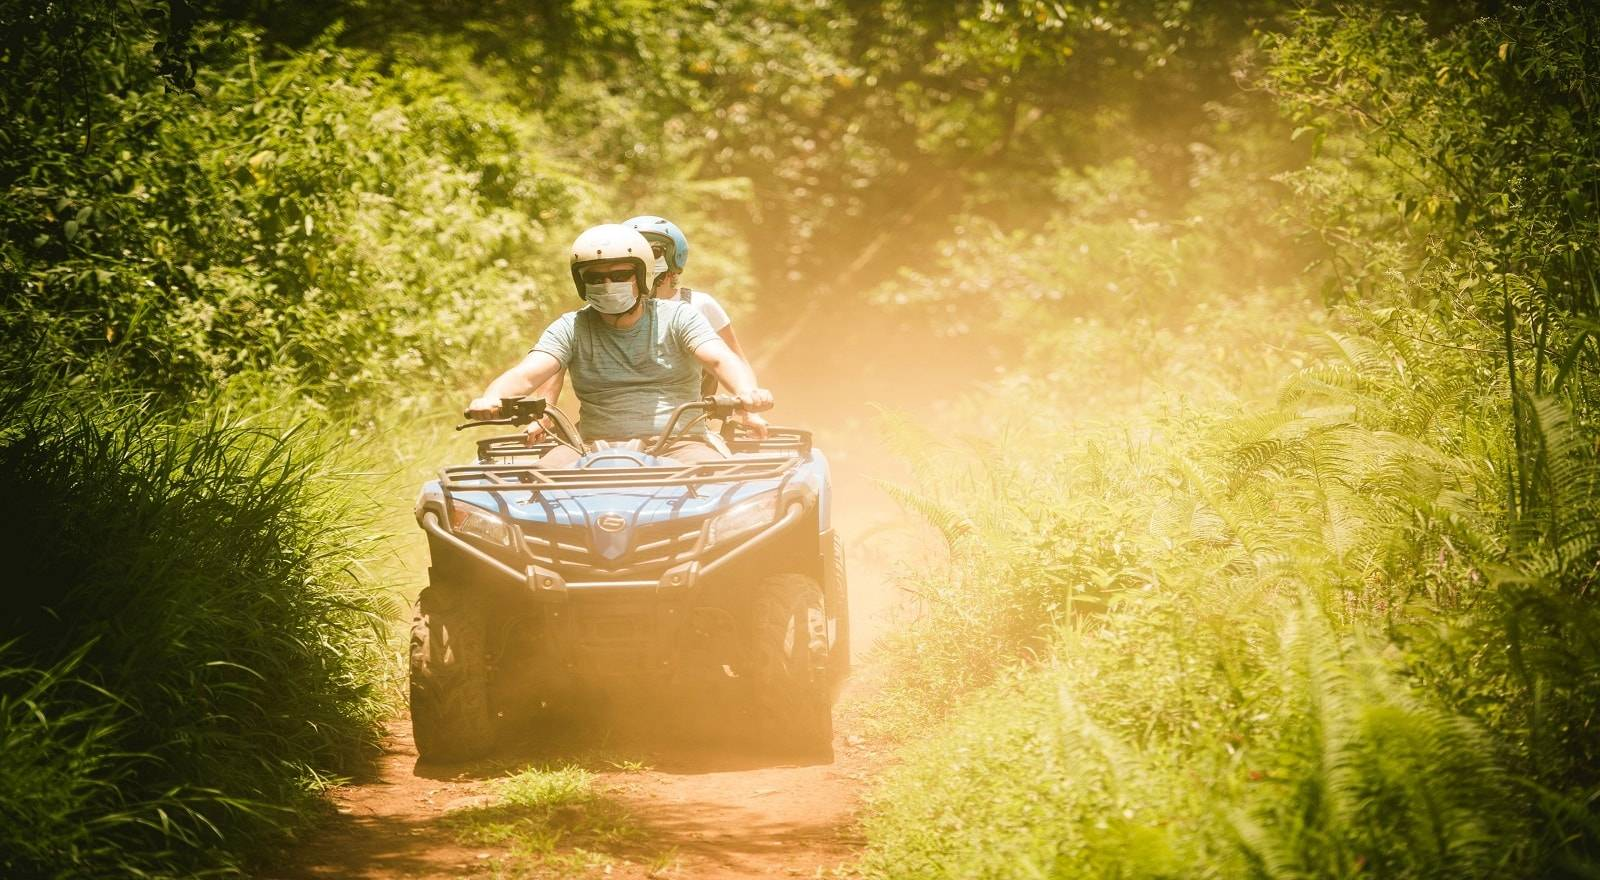 Quadbike Adventure - Lost in Nature of Mauritius